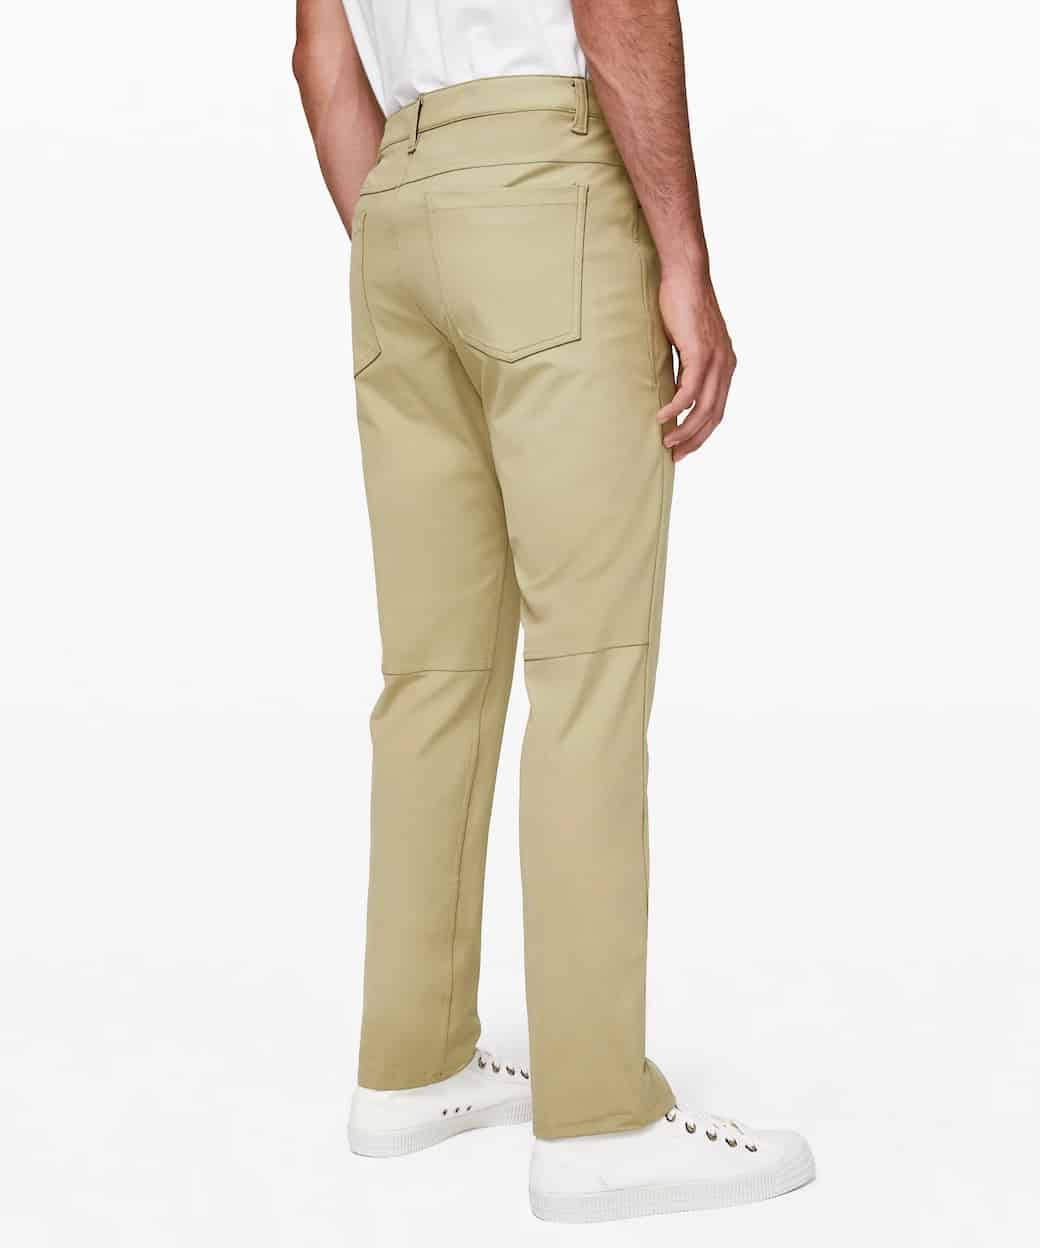 ABC Pant Review - God's gift to men? Or expensive marketing gimmick? 10